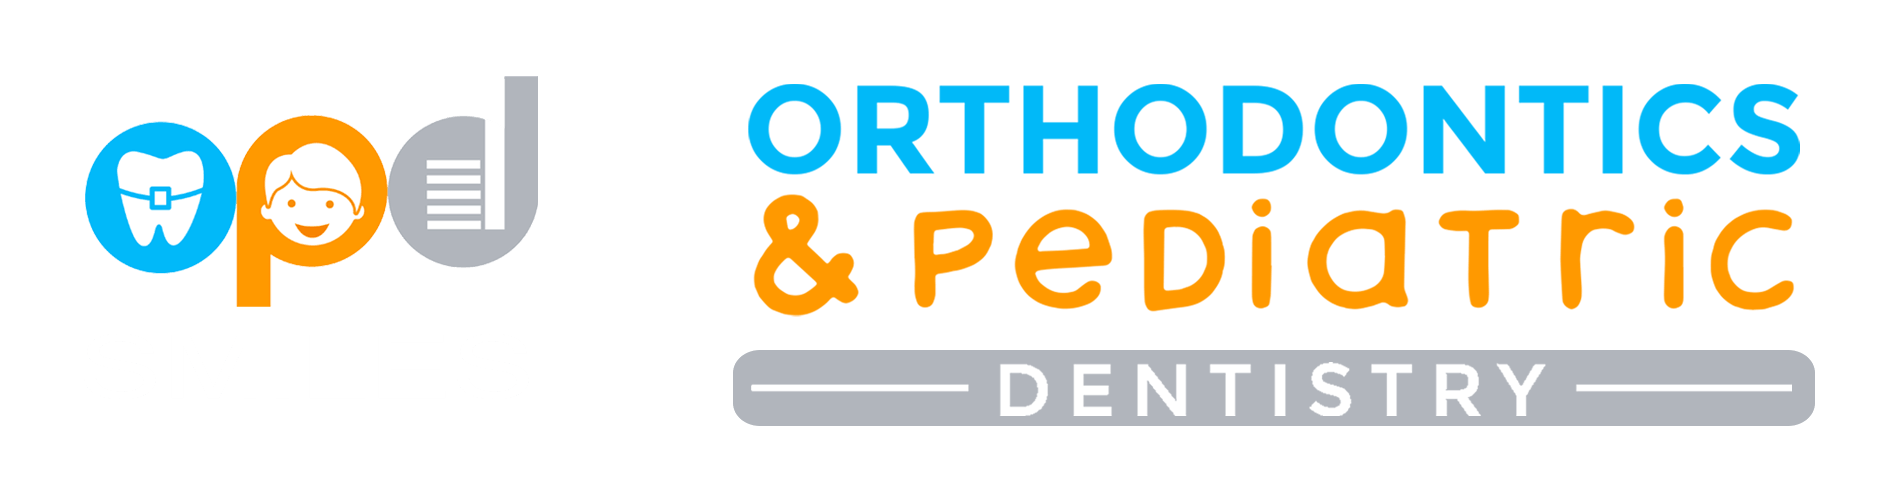 OPD Smiles Orthodontics & Pediatric Dentistry logo